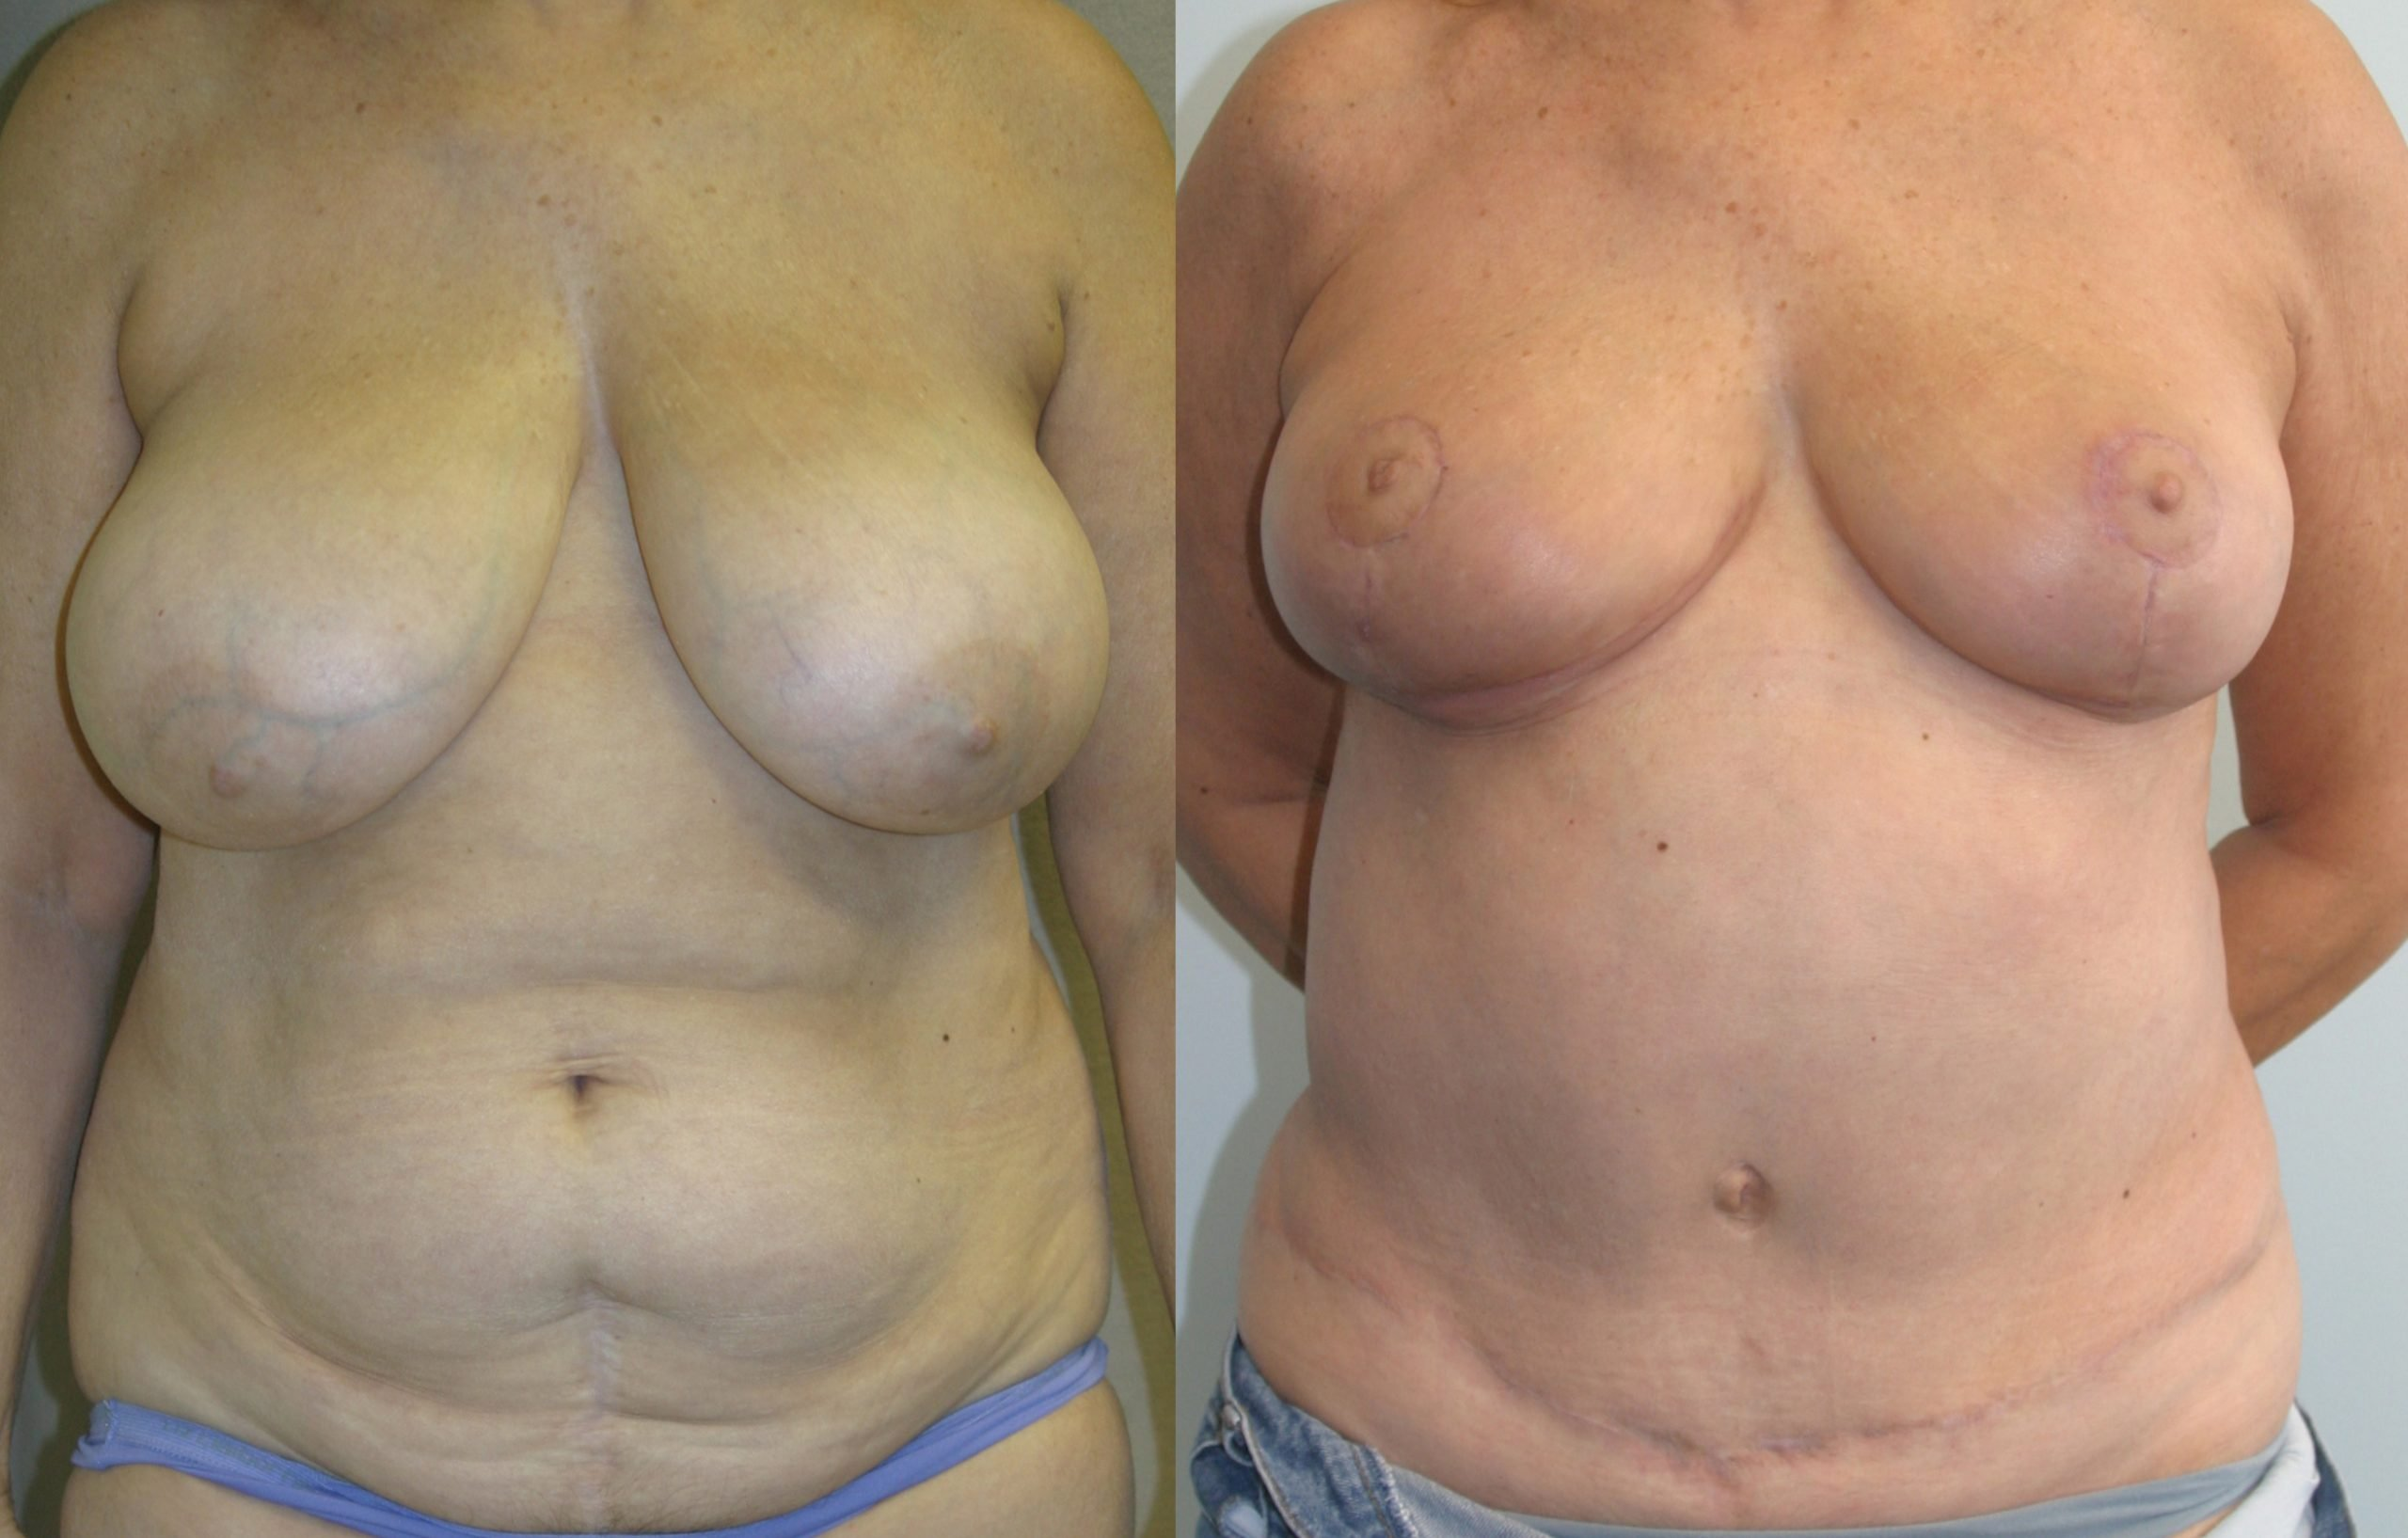 62-year-old tummy tuck one year liposuction back,, breast reduction 3 months front